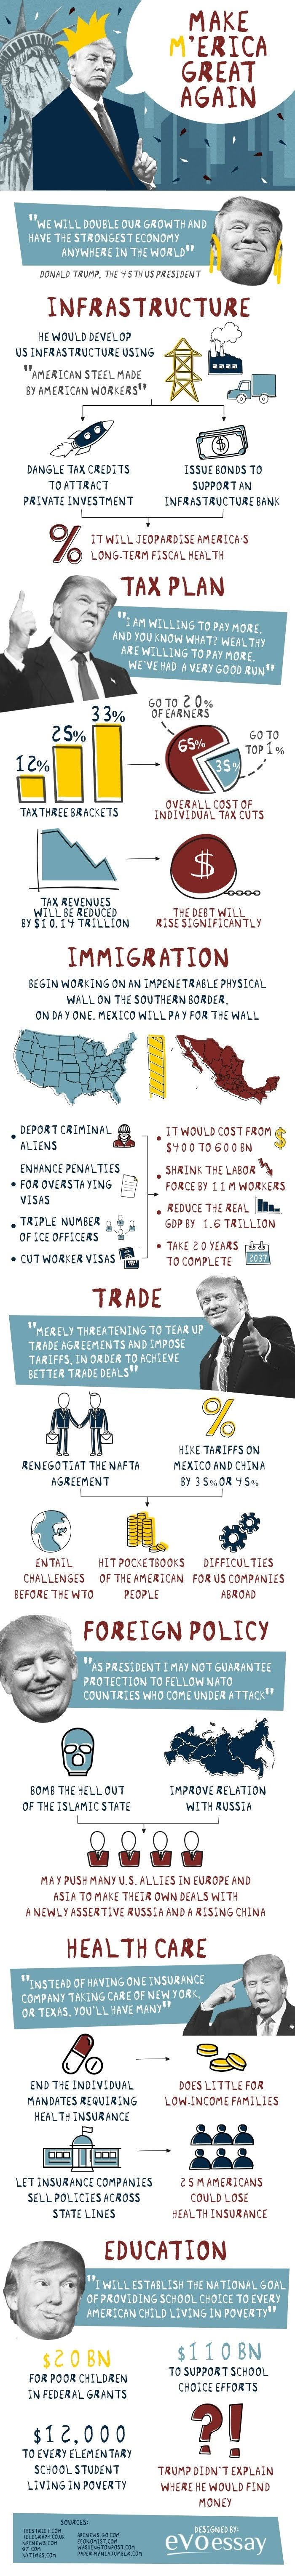 Make America Great Again? #infographic